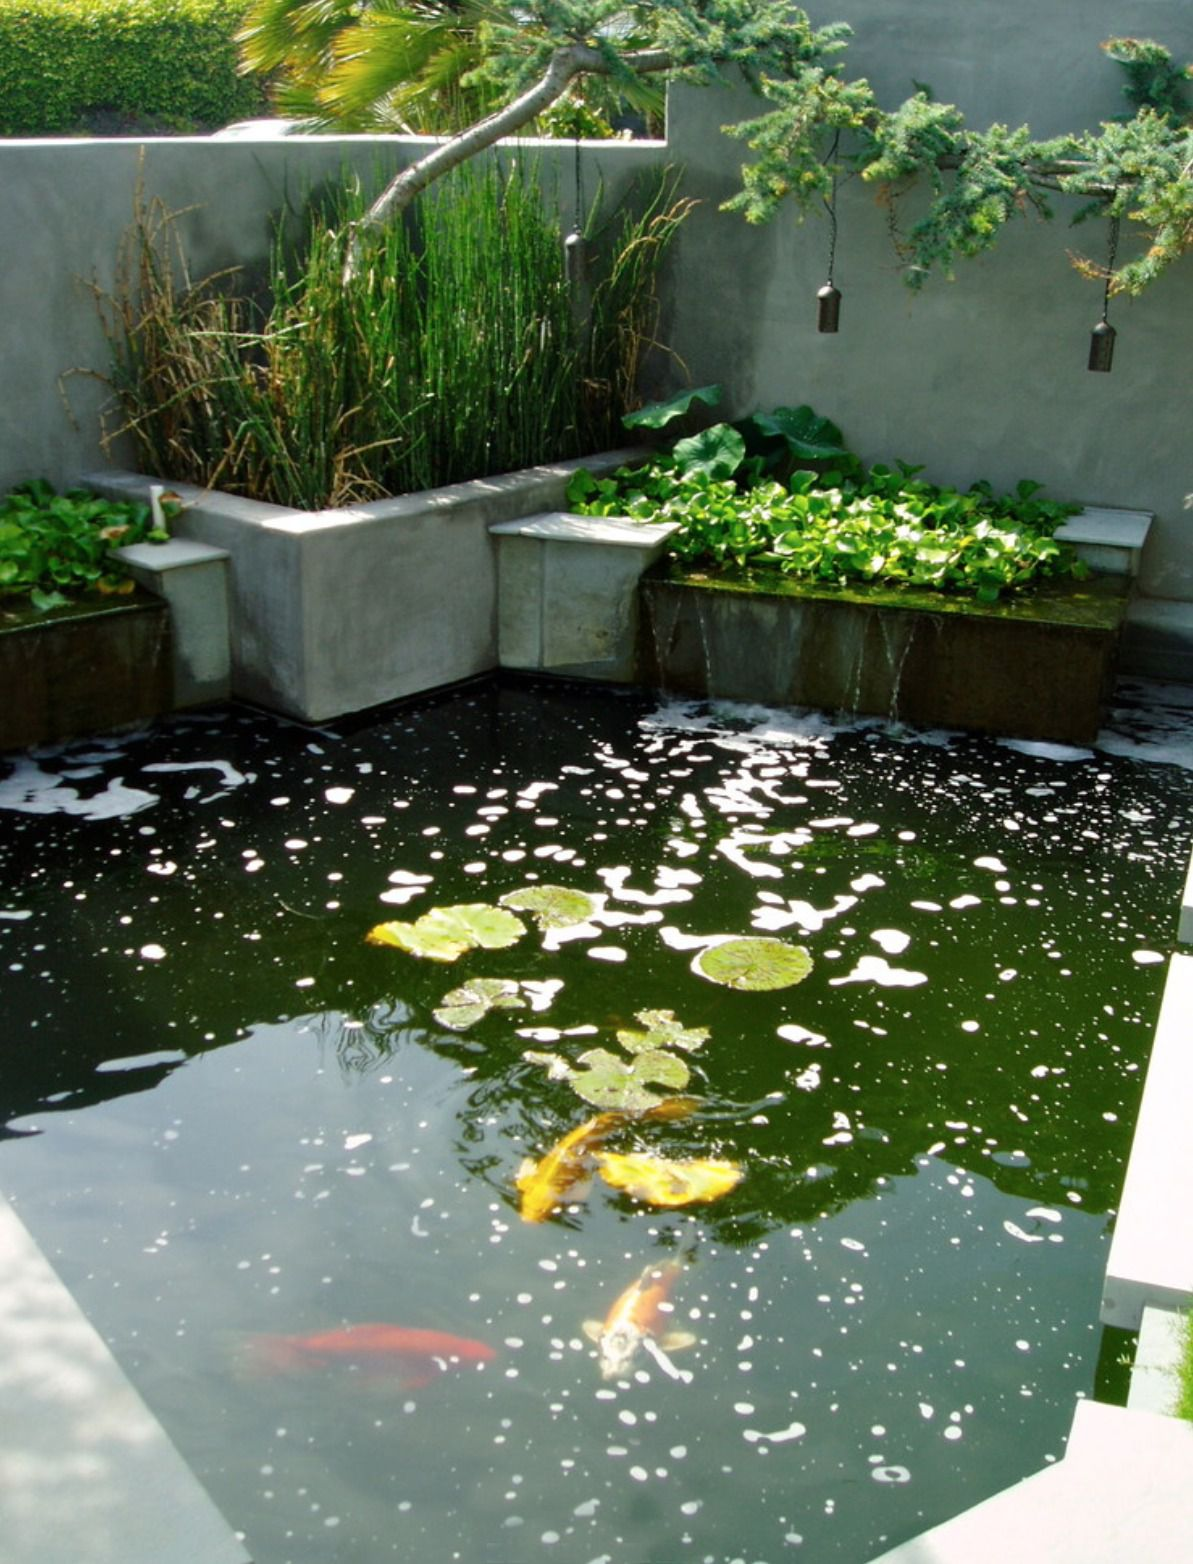 25 Pond Waterfall Designs and Ideas Raised Garden Ponds Designs on small plastic outdoor ponds, concrete fish ponds, raised water garden, gardening ponds, raised landscape ponds, beautiful goldfish ponds, above ground ponds, raised small fish ponds, small indoor fish ponds, small backyard ponds, raised stone pond, raised koi pond ideas, best koi ponds, koi fish ponds, raised pond kit, raised wood pond, flower bed ponds, backyard koi ponds, raised goldfish ponds, small ornamental ponds,